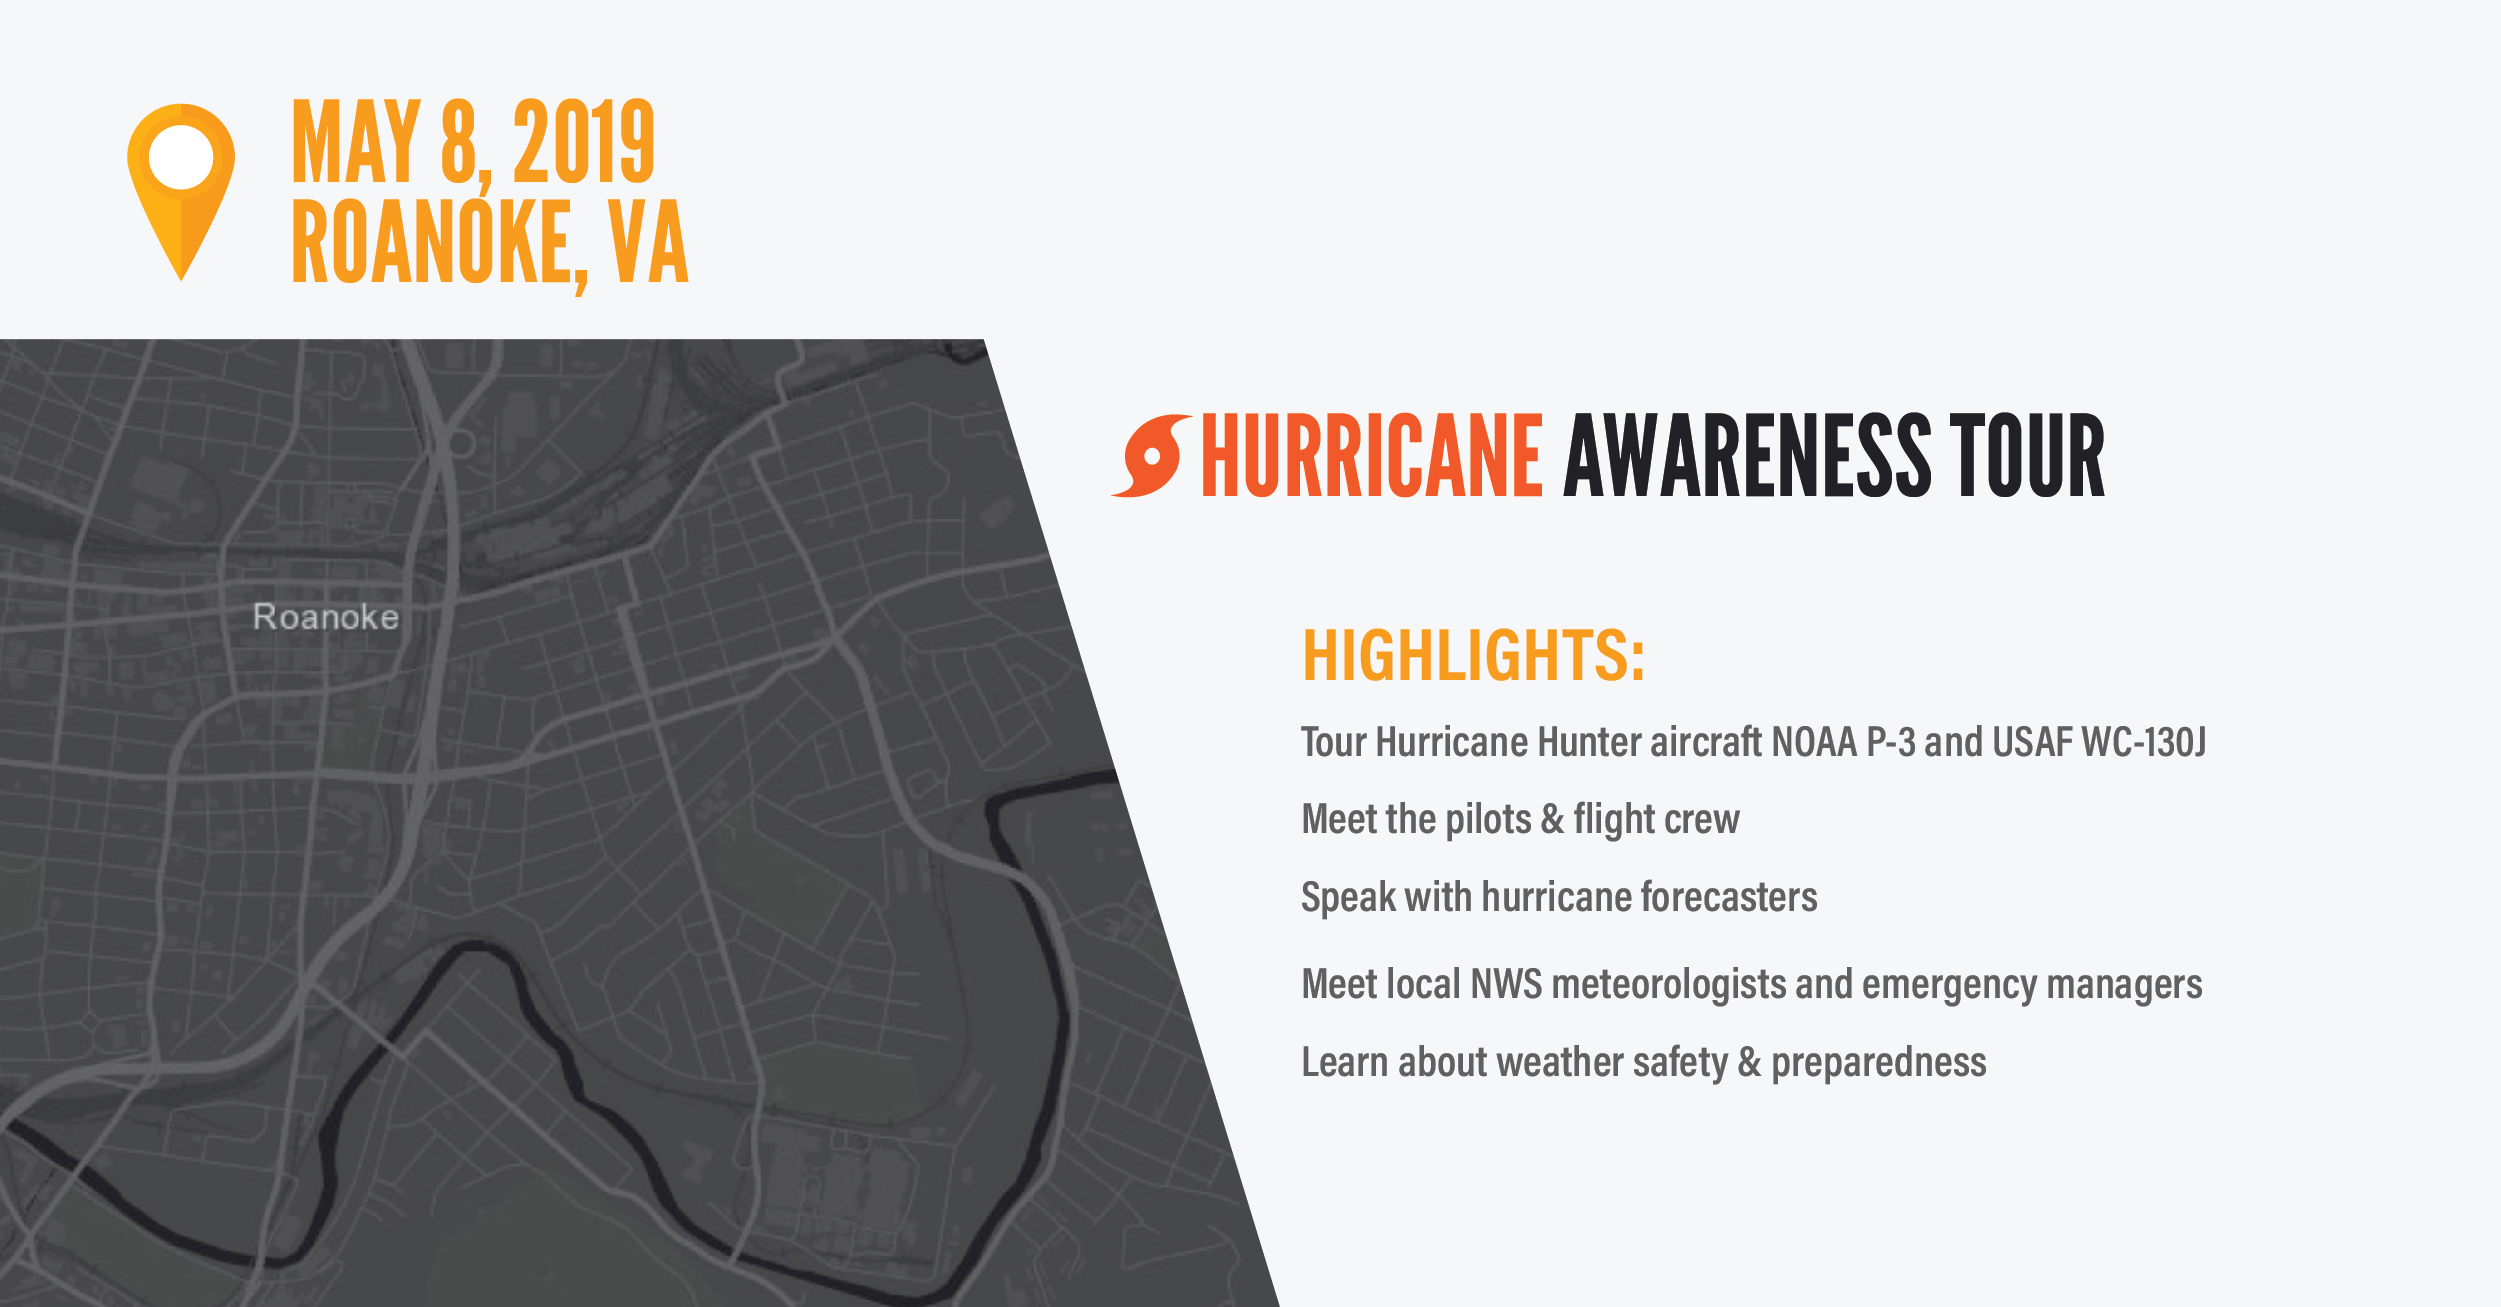 This image advertises the 2019 Hurricane Awareness Tour at Roanoke. Virginia